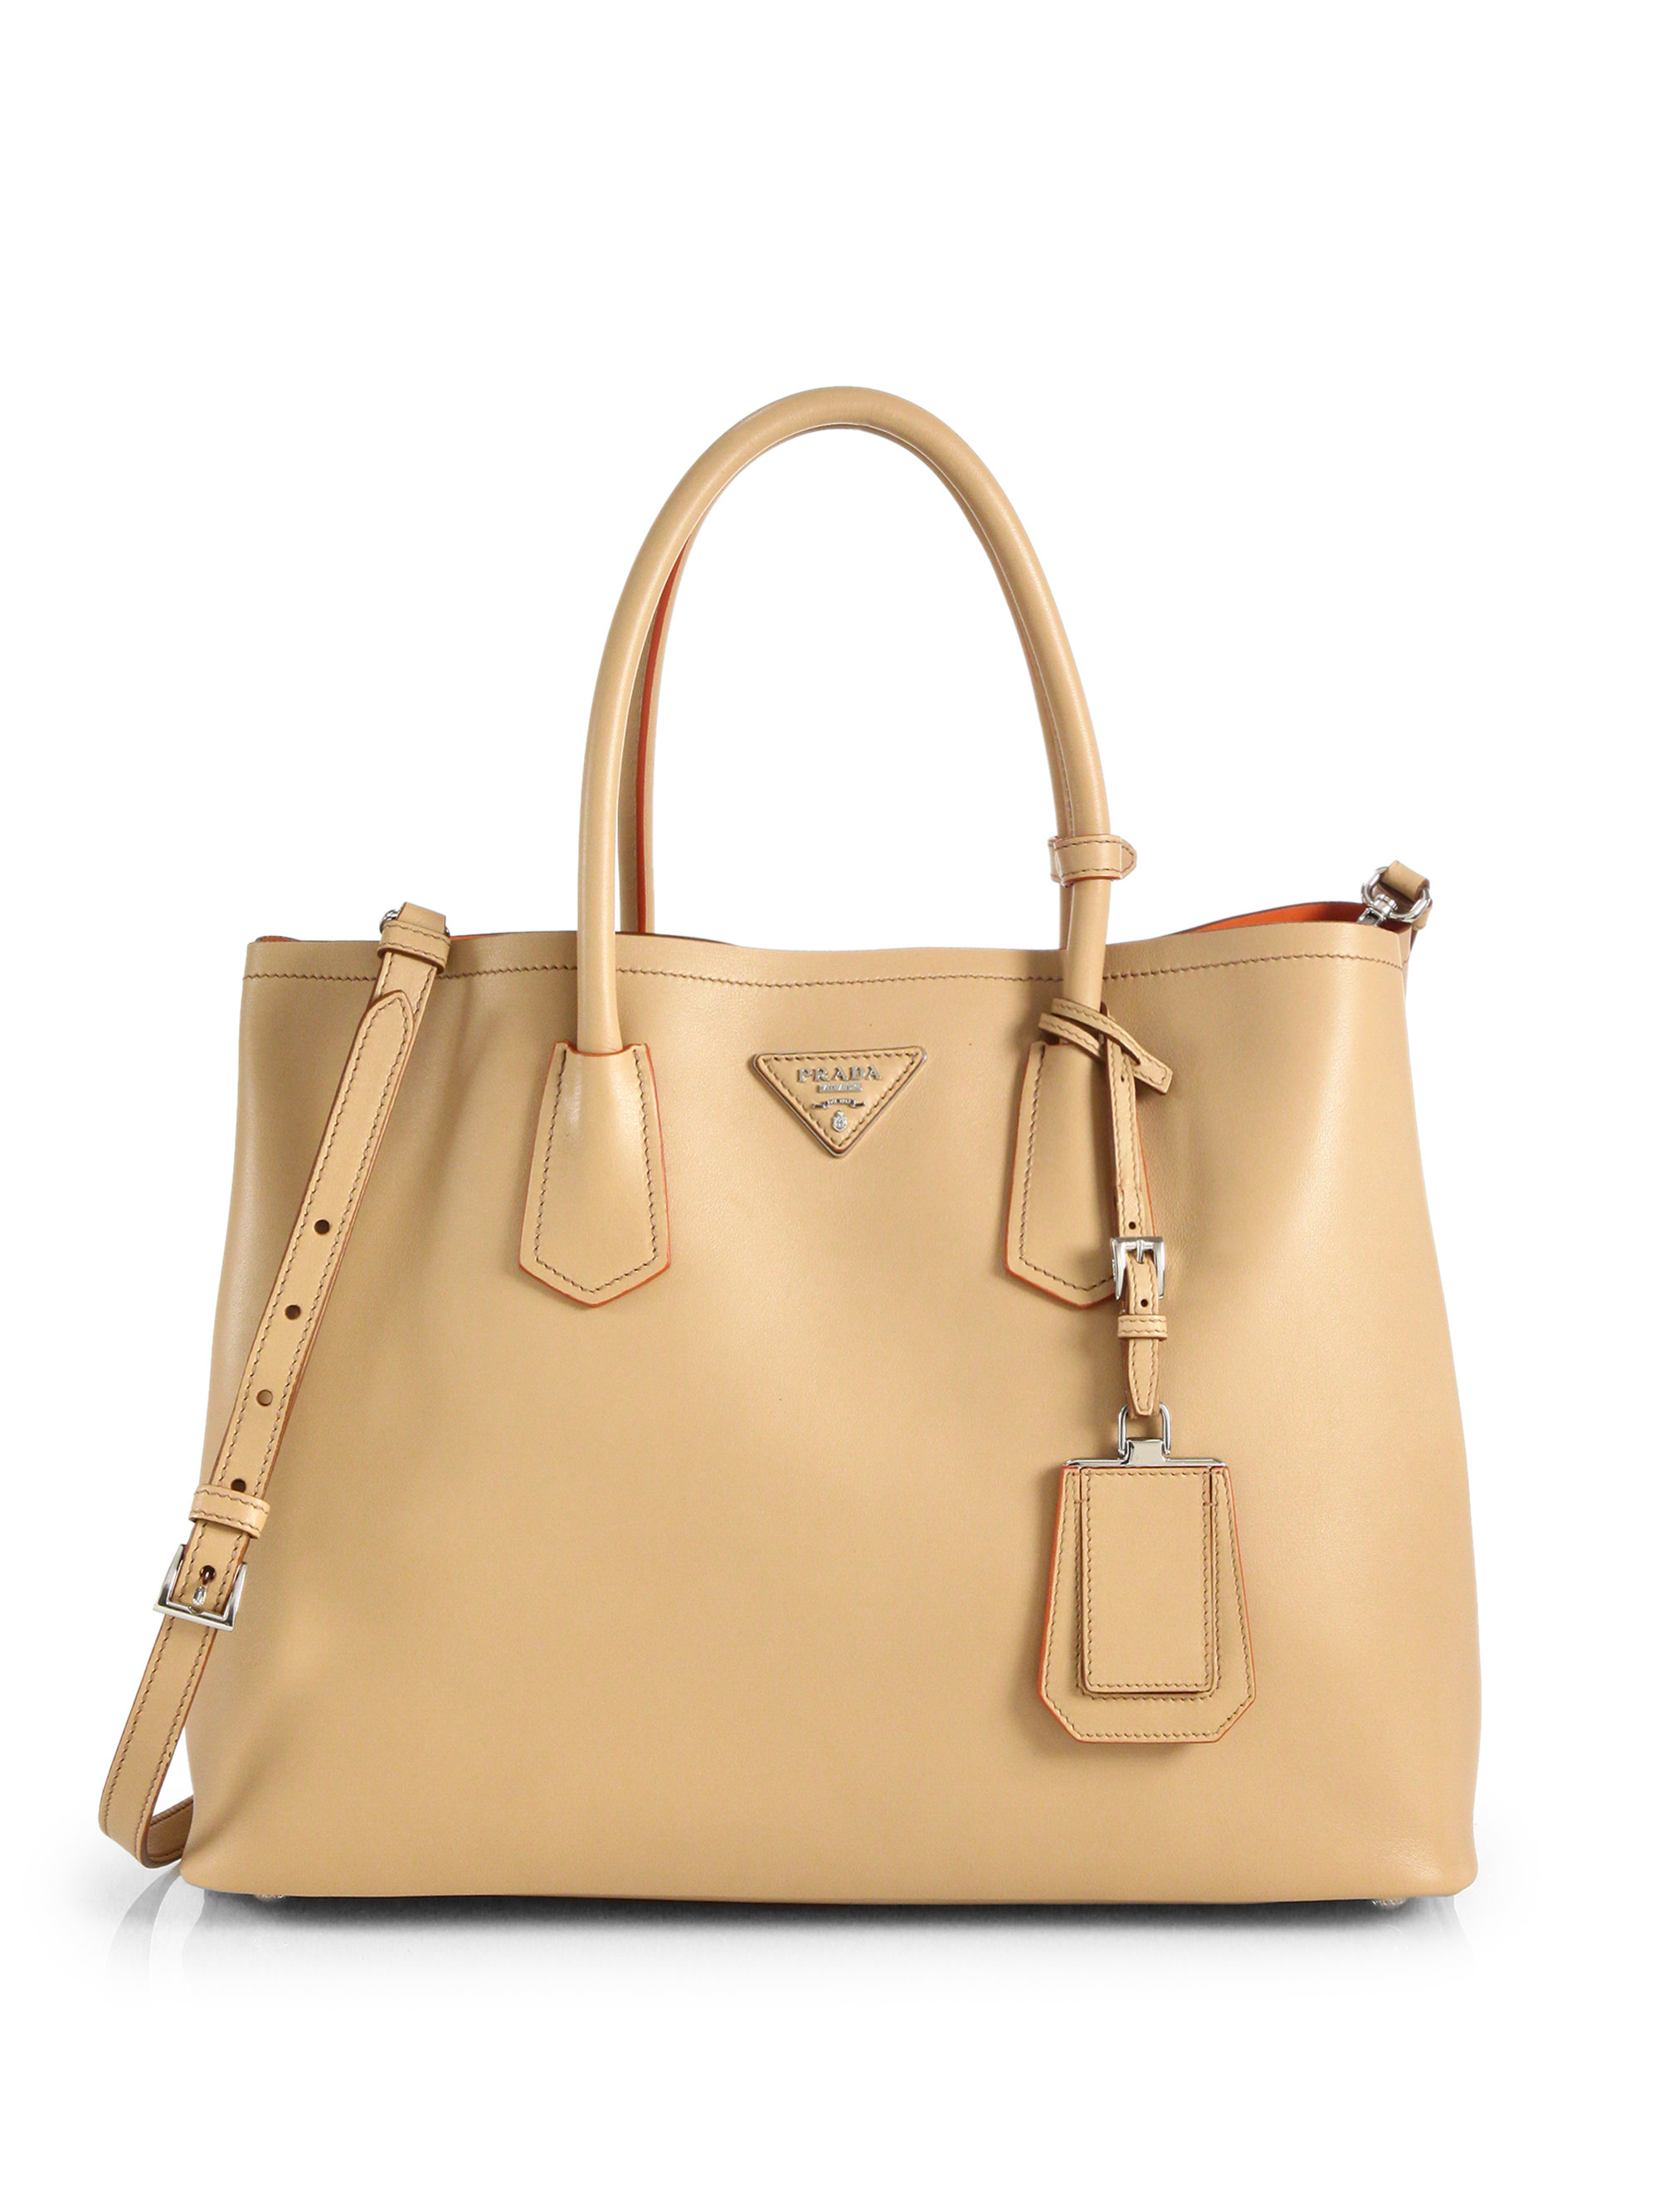 6c817402fa3496 Prada City Calf Double Bag Review | Stanford Center for Opportunity ...